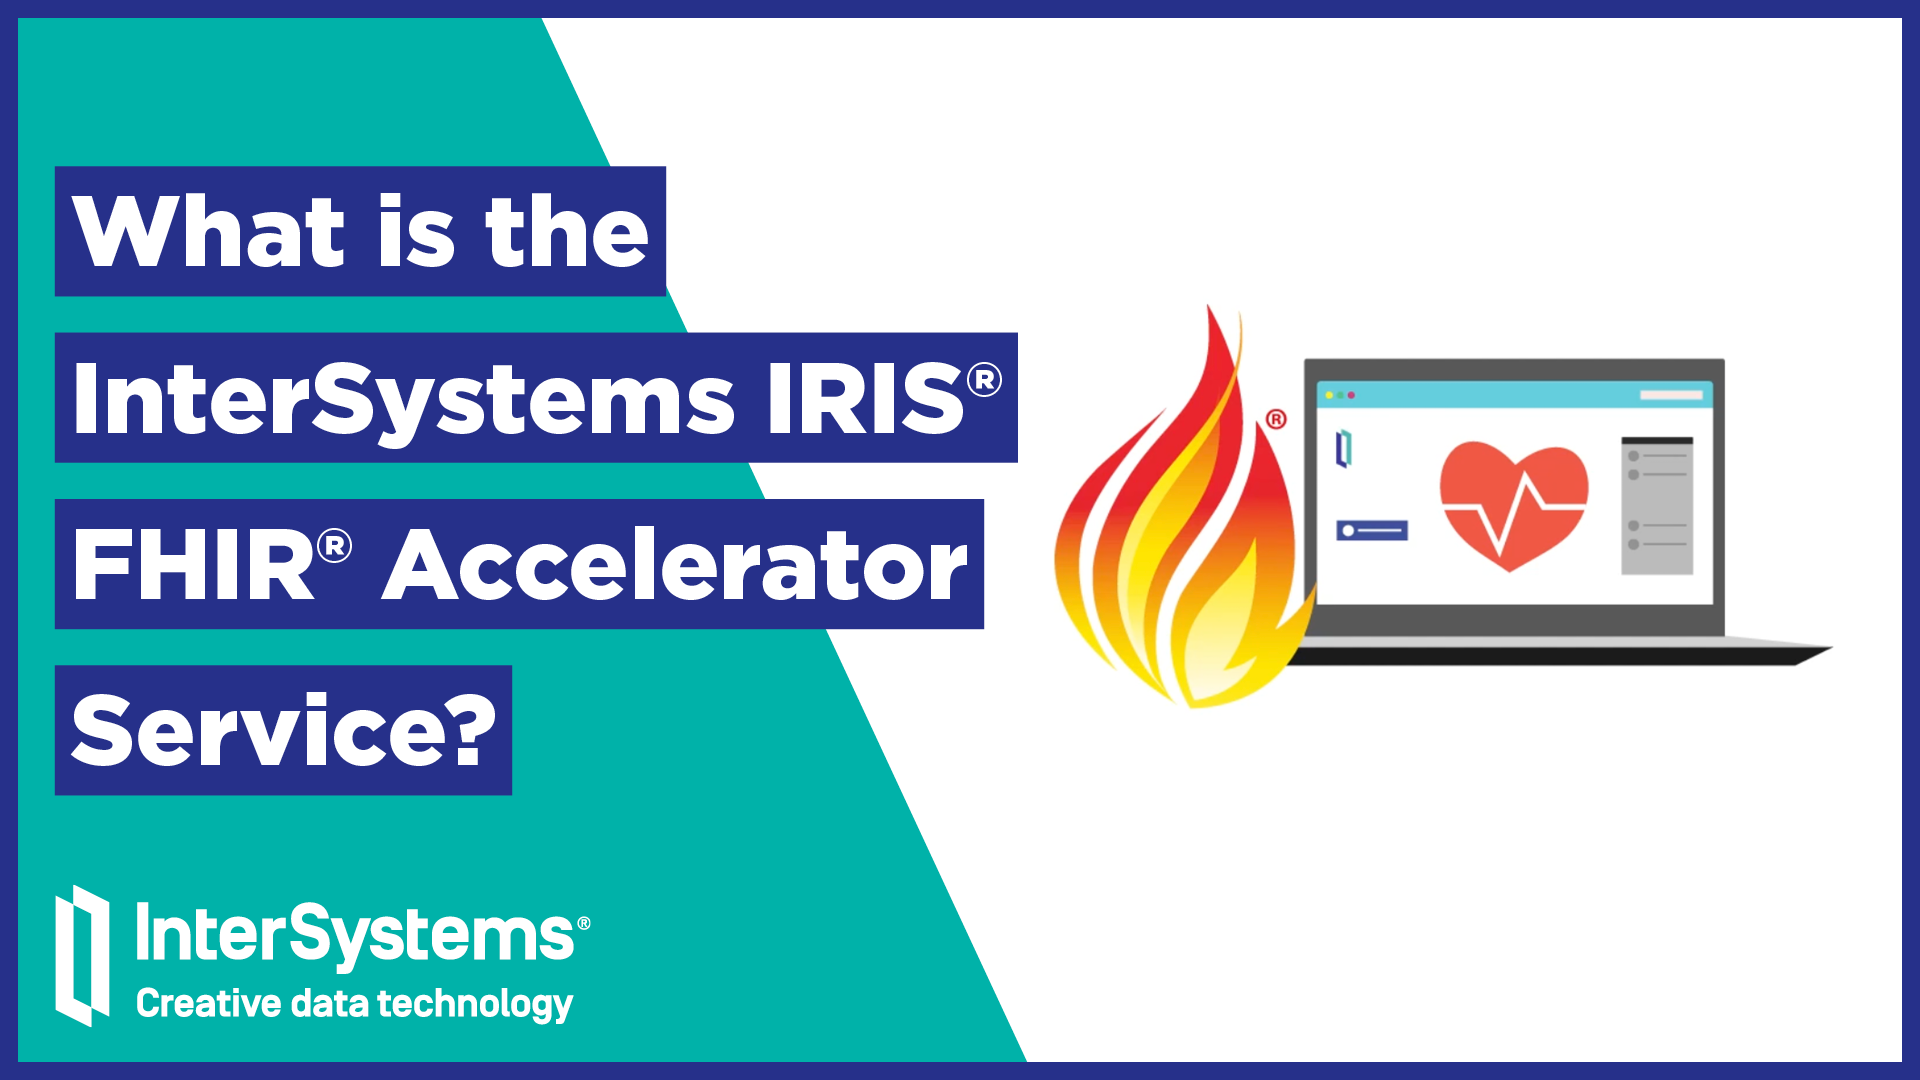 What is the InterSystems IRIS® FHIR® Accelerator?